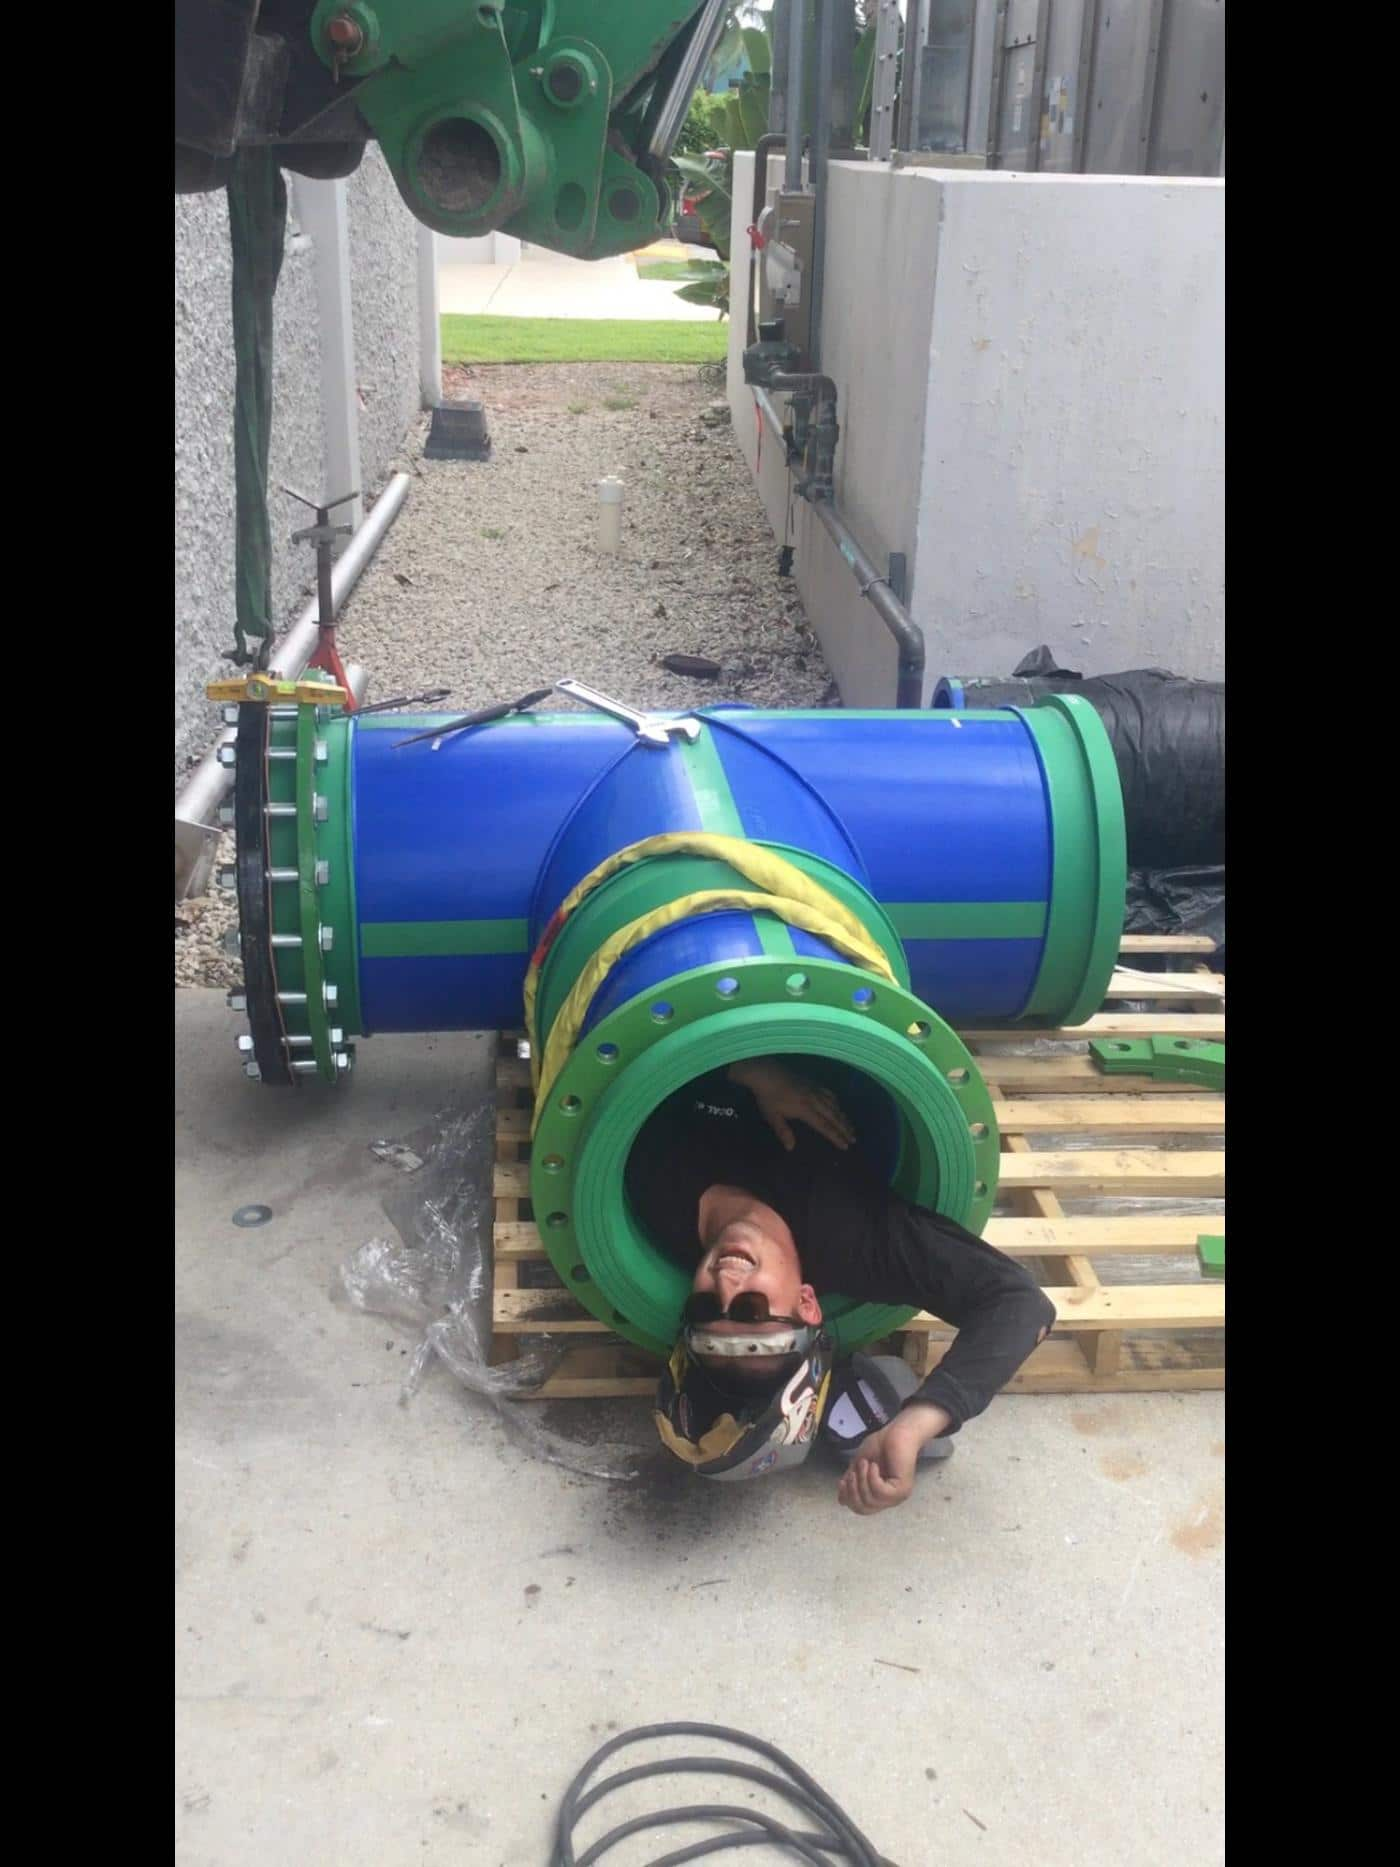 Installer in large diameter Aquatherm pipe.